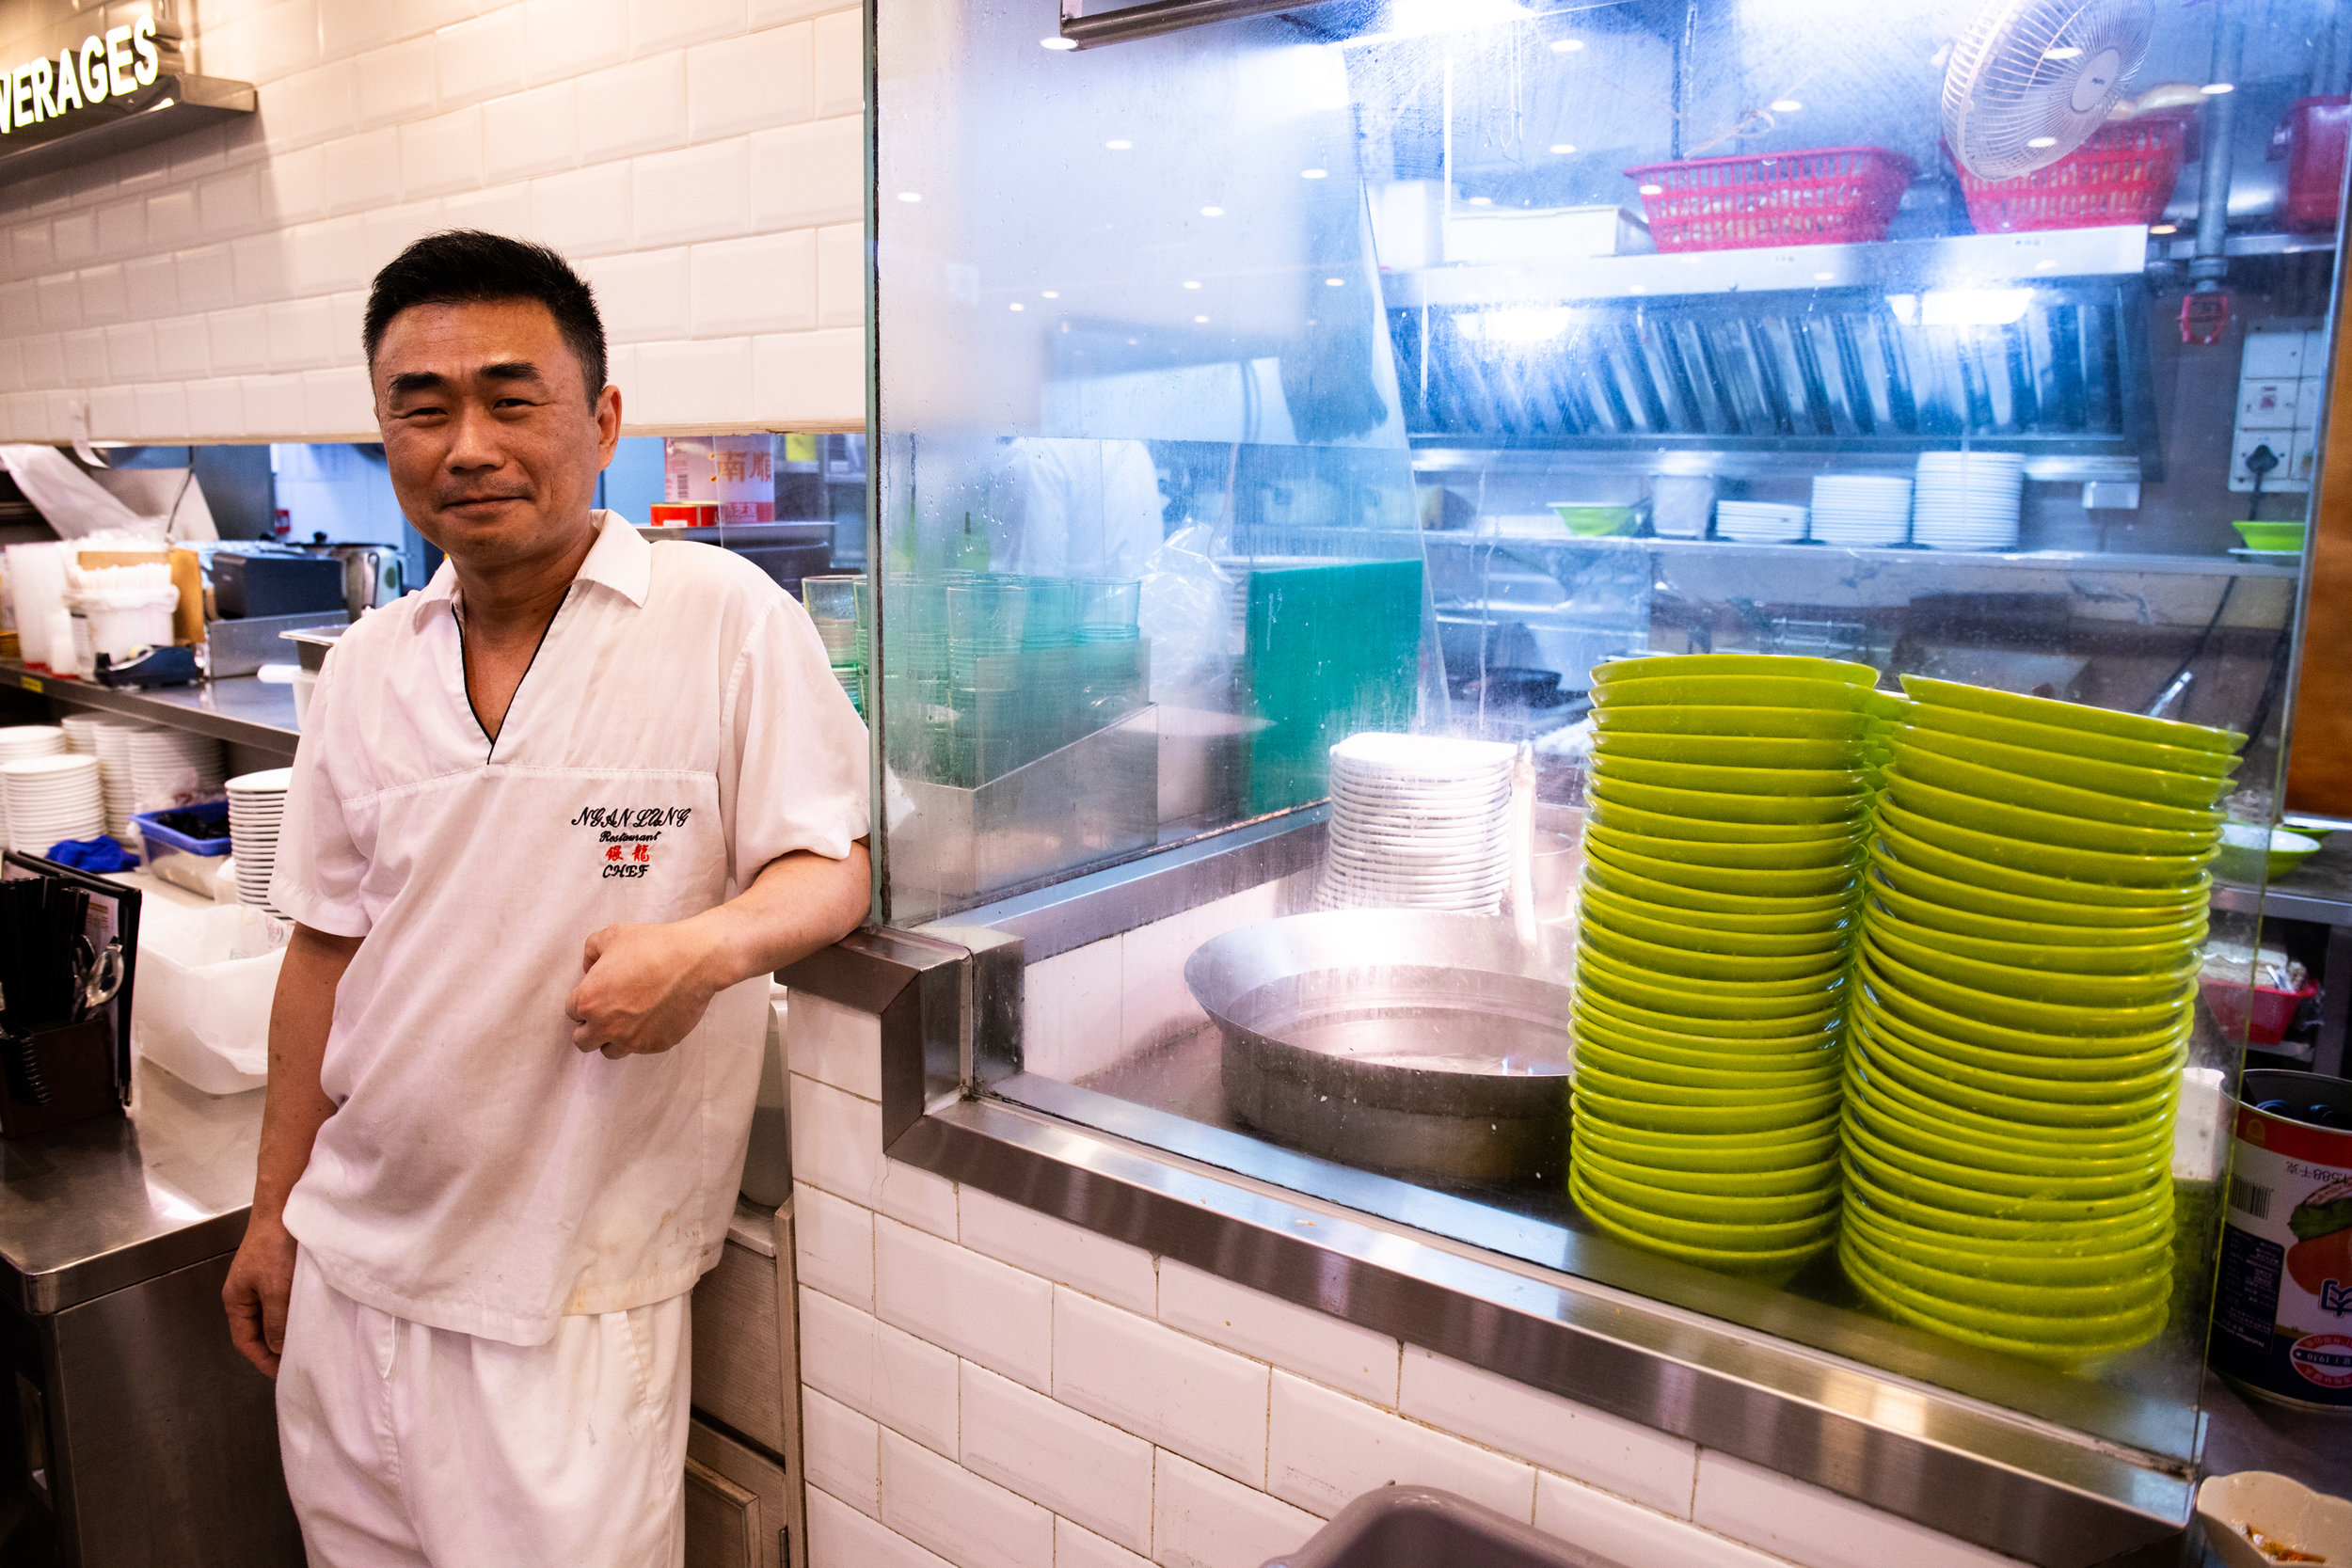 The Chef of Ngan Lung Restaurant. These Diners are steadfastly holding on despite a growing homogenization of Hong Kong culture. Through traditional comfort food and milk tea they are an example of the Living Heritage of Hong Kong.